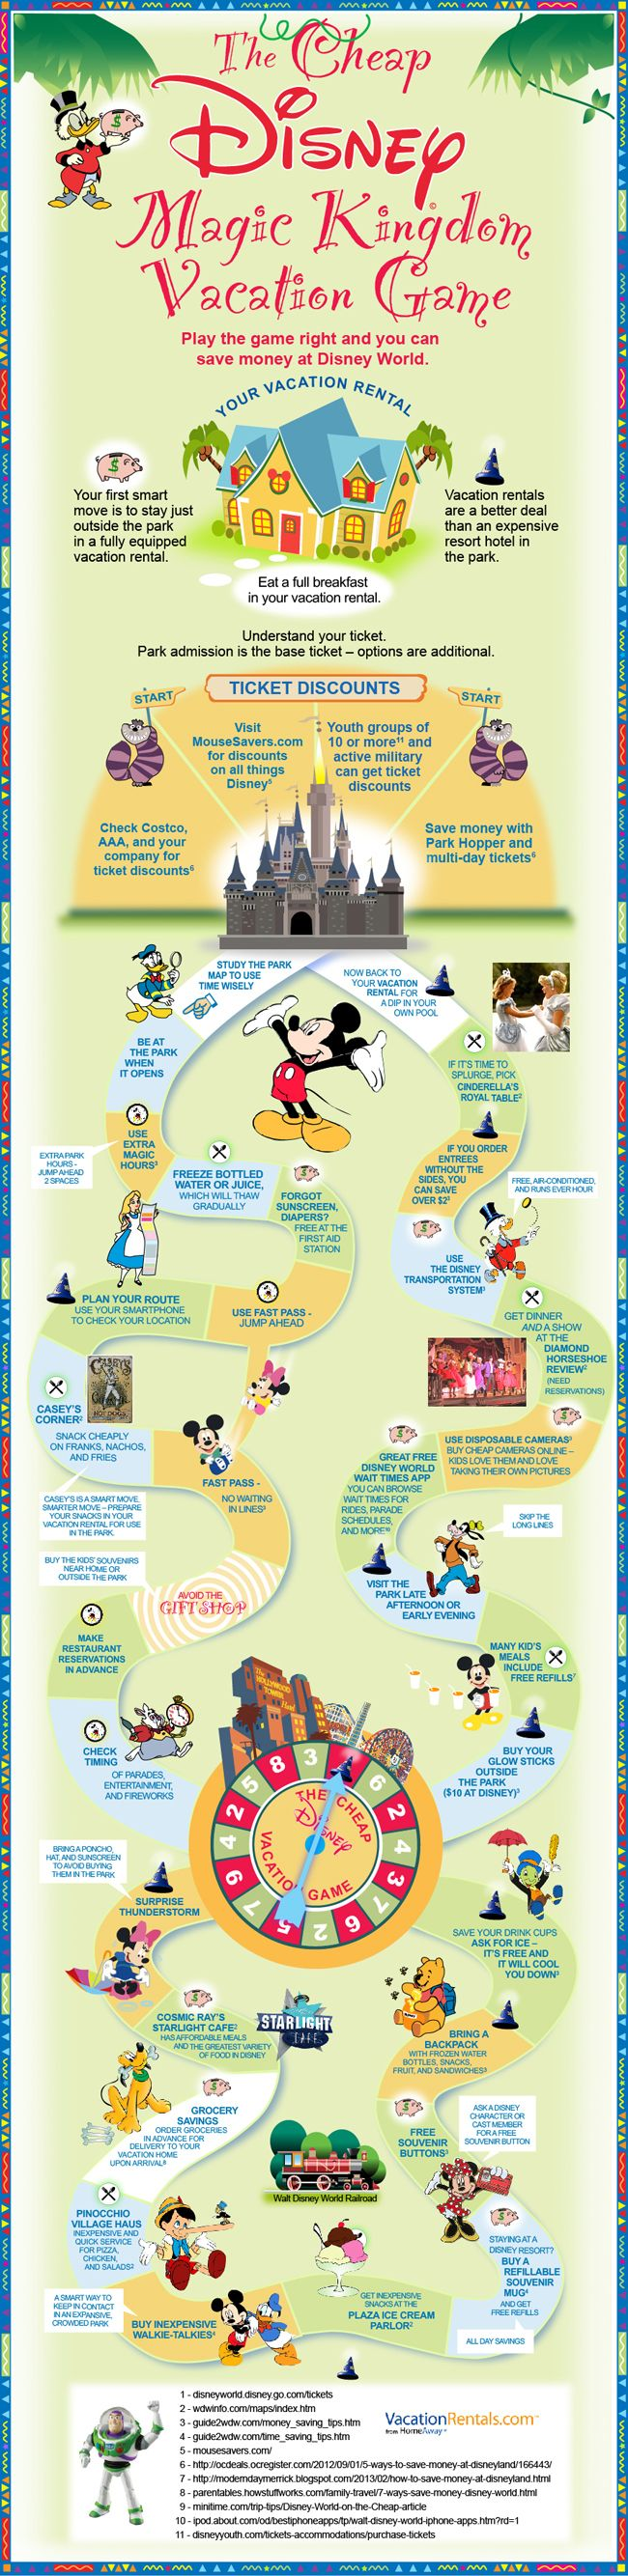 HomeAway: 35 Disney Vacation Tips: An Infographic